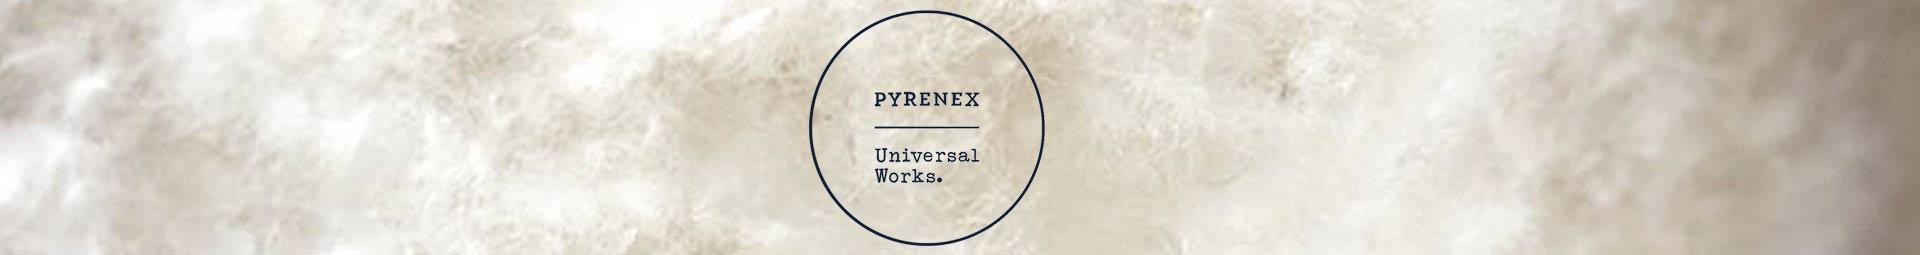 Exclusive edition warm men down jackets and vests | Pyrenex x Universal Works